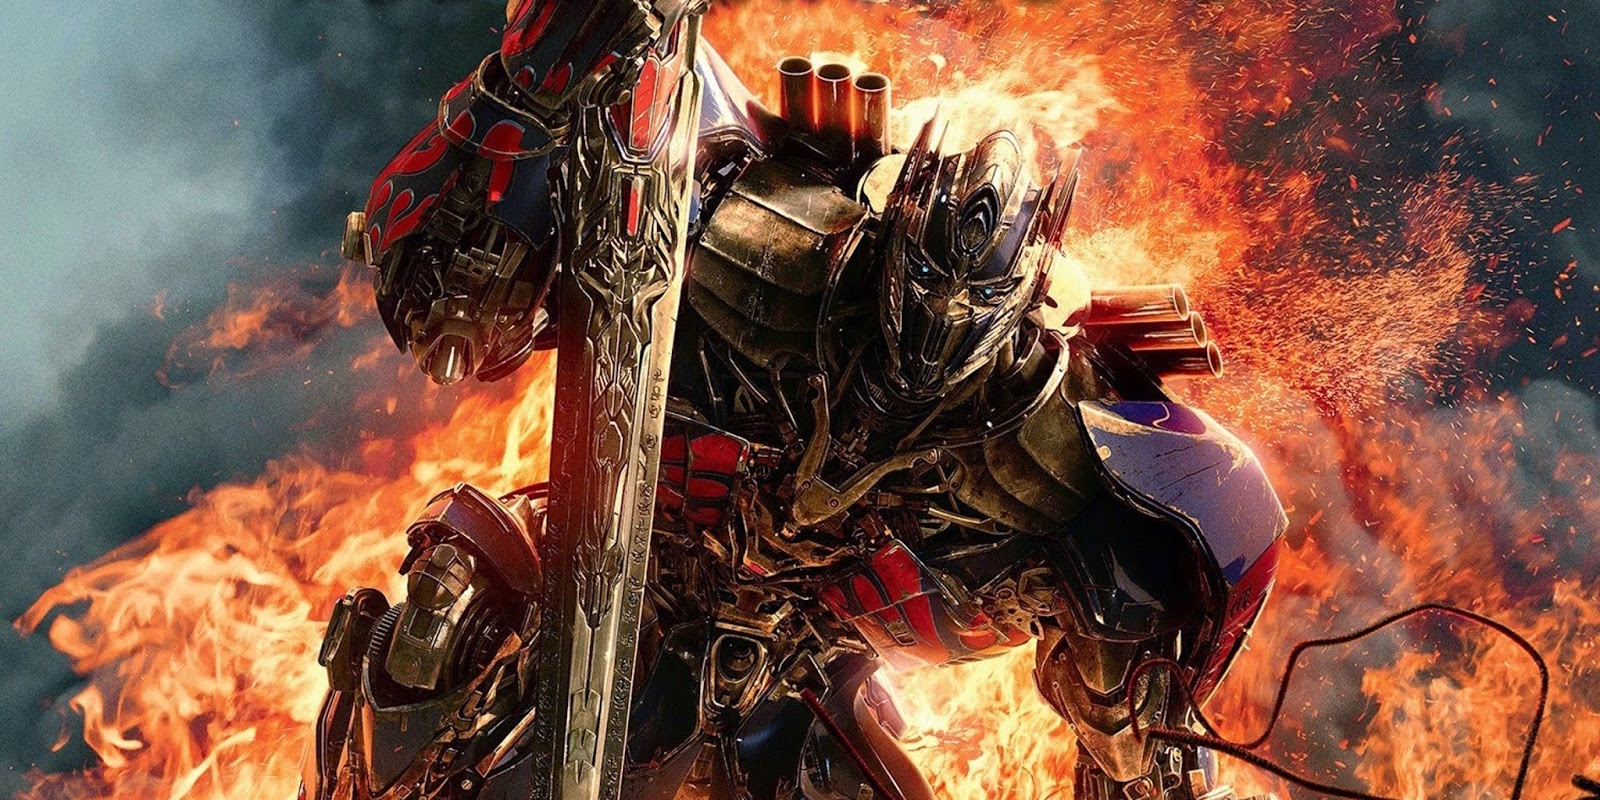 'Transformers: The Last Knight' is (unsurprisingly) a dizzying blur of light and sound